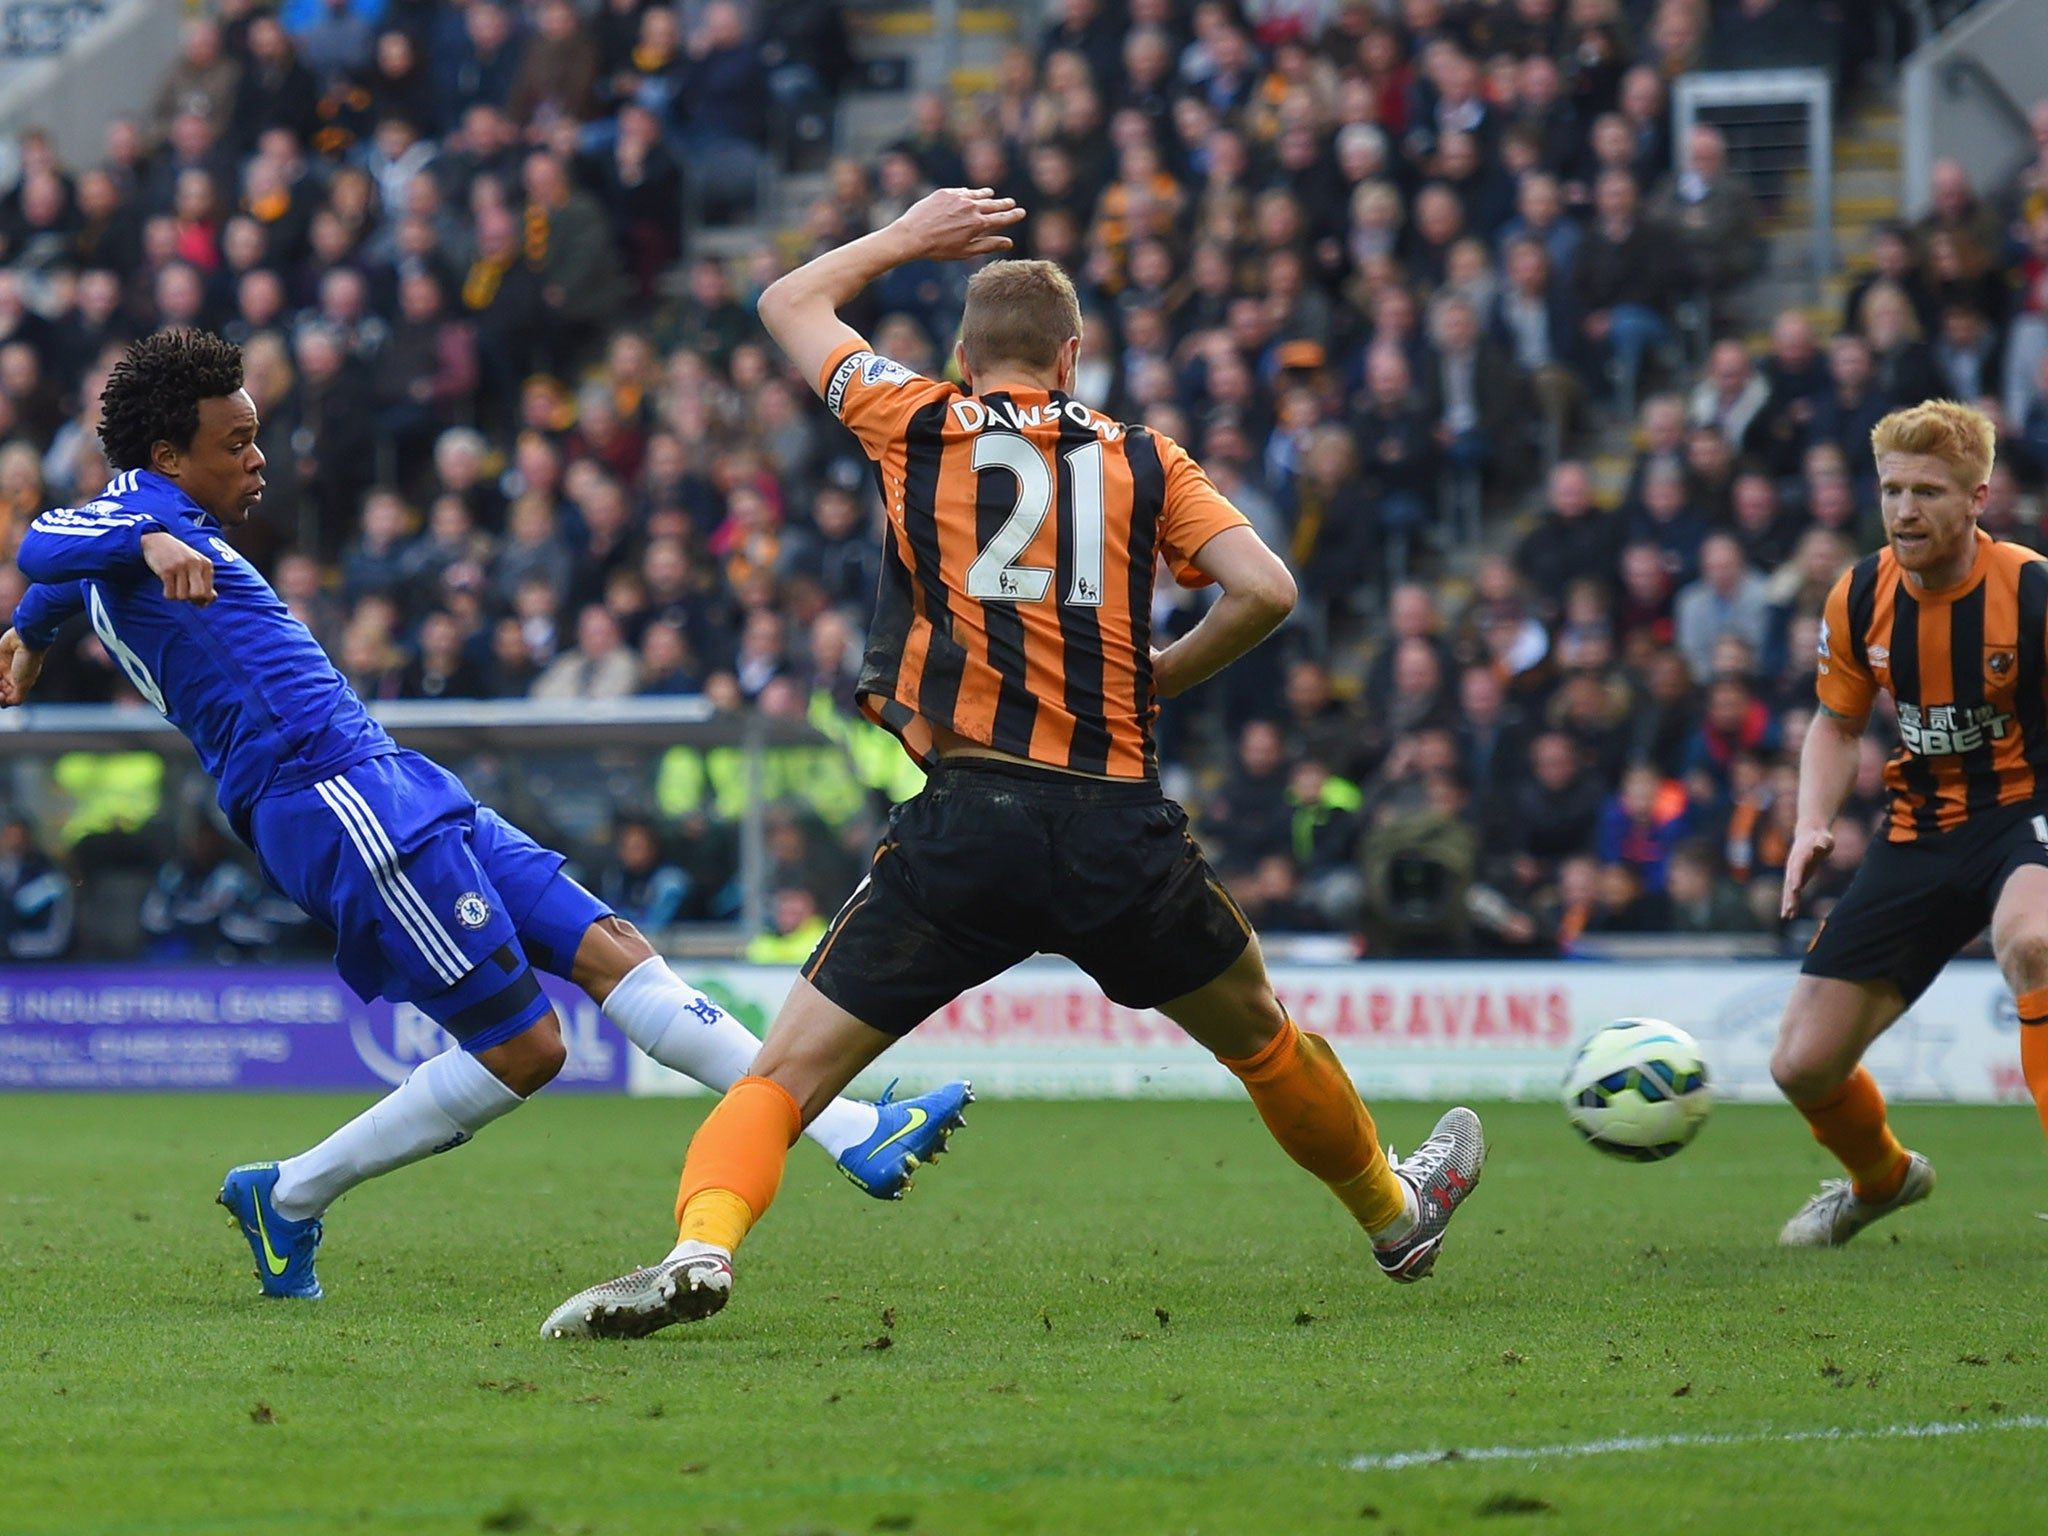 Remy Chelsea Wallpaper Hull City vs Chelsea Match